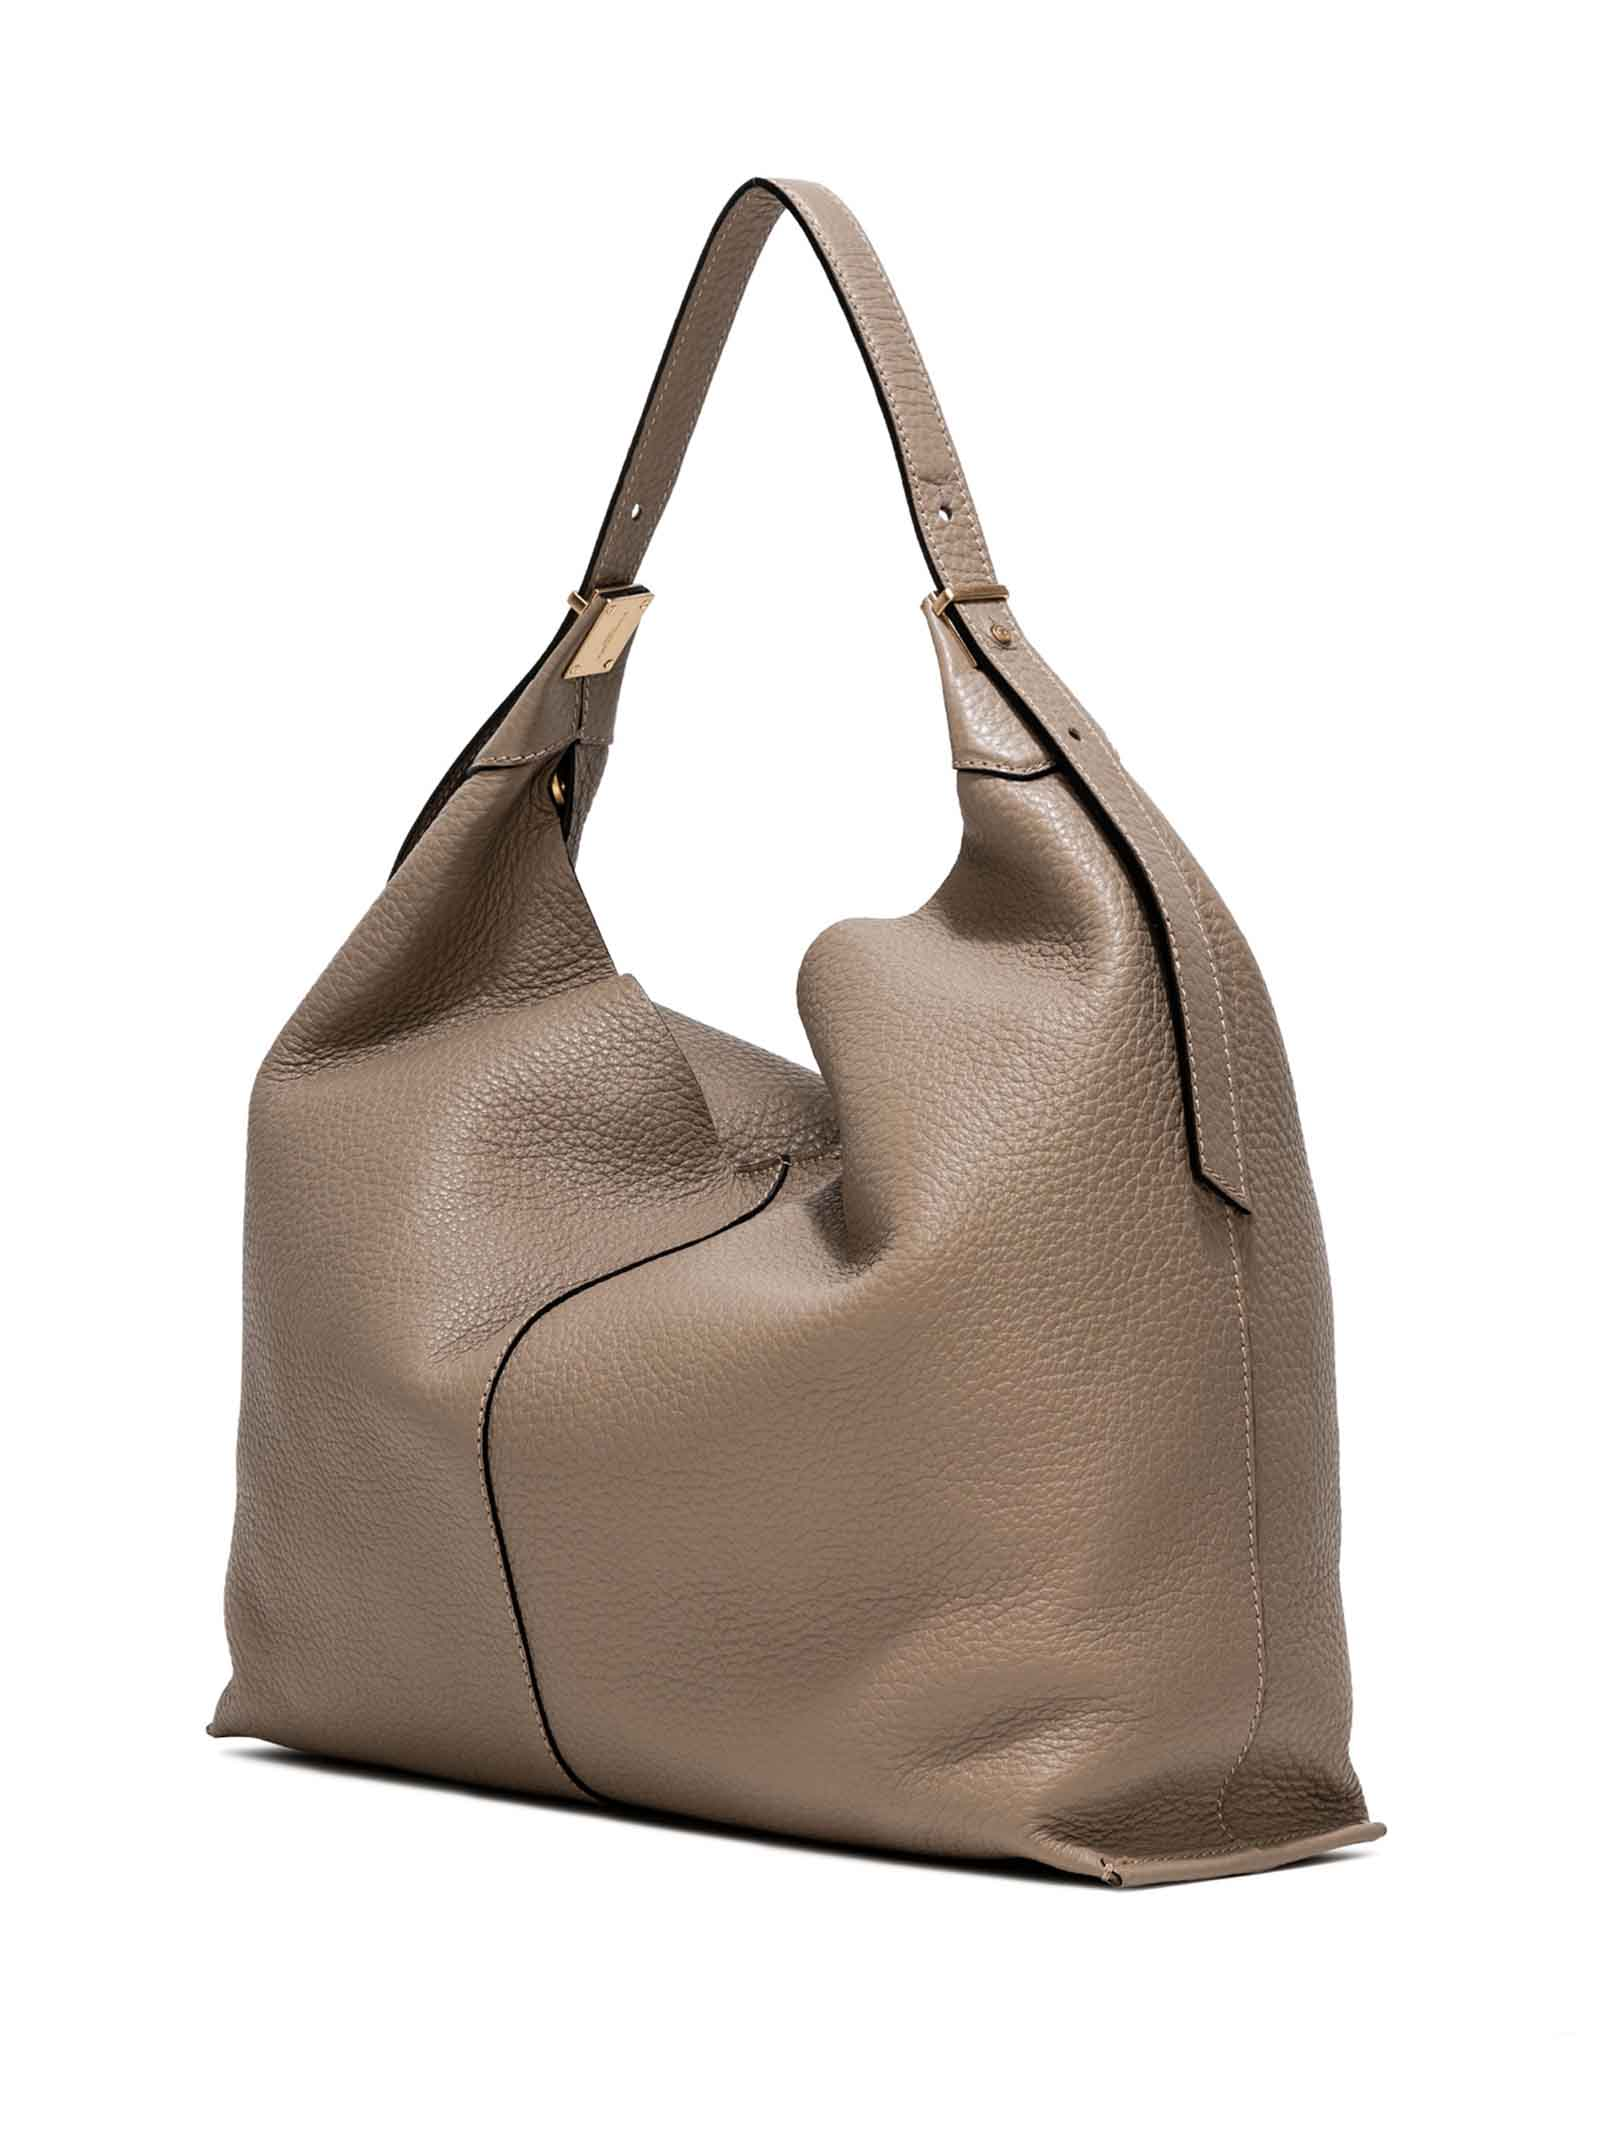 Women's Shoulder Bag Lisa in Beige Leather with Adjustable Handle and Interior Clutch Gianni Chiarini | Bags and backpacks | BS89151422